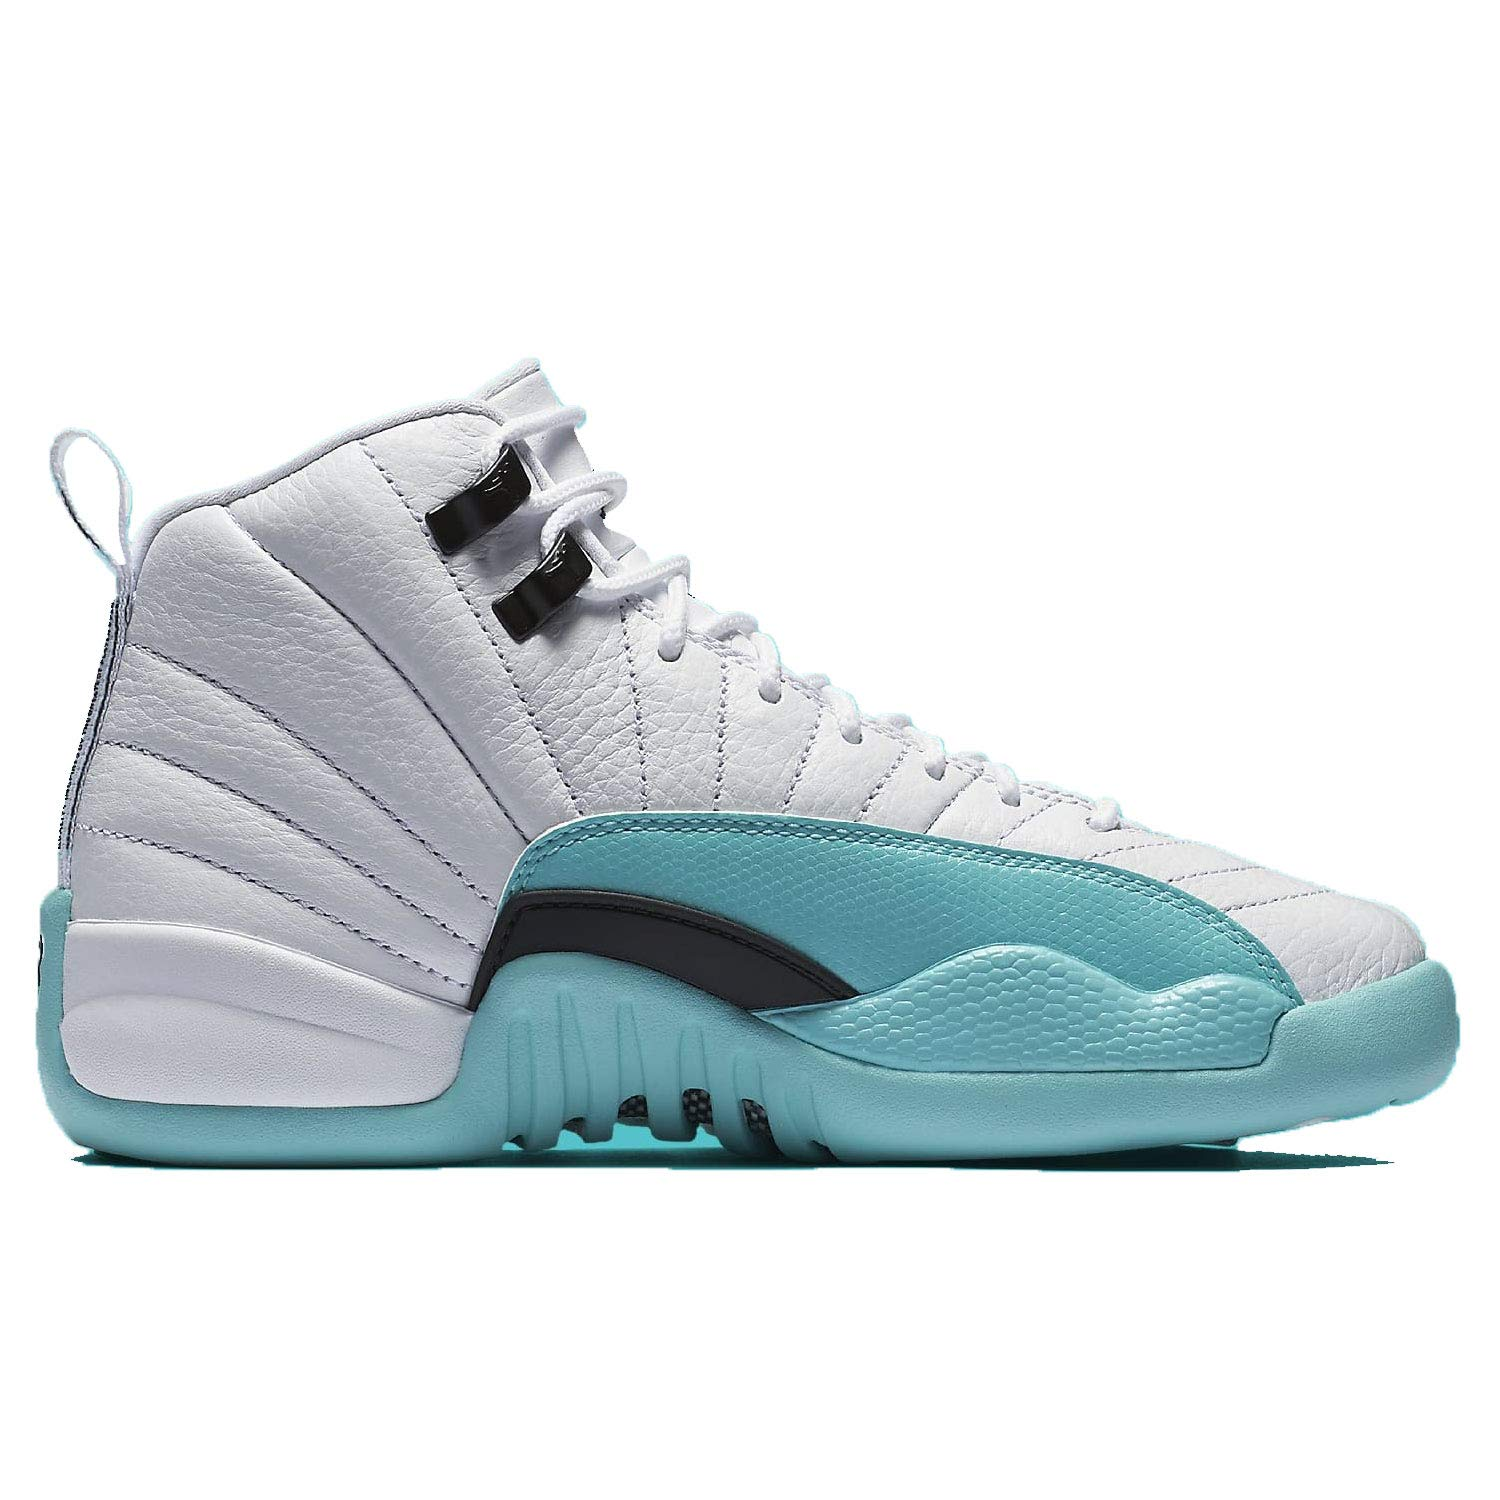 online store eb74f 18027 Amazon.com   Nike - Air Jordan XII Retro GS - 510815100 - Color   Turquoise-White - Size  4.5   Basketball